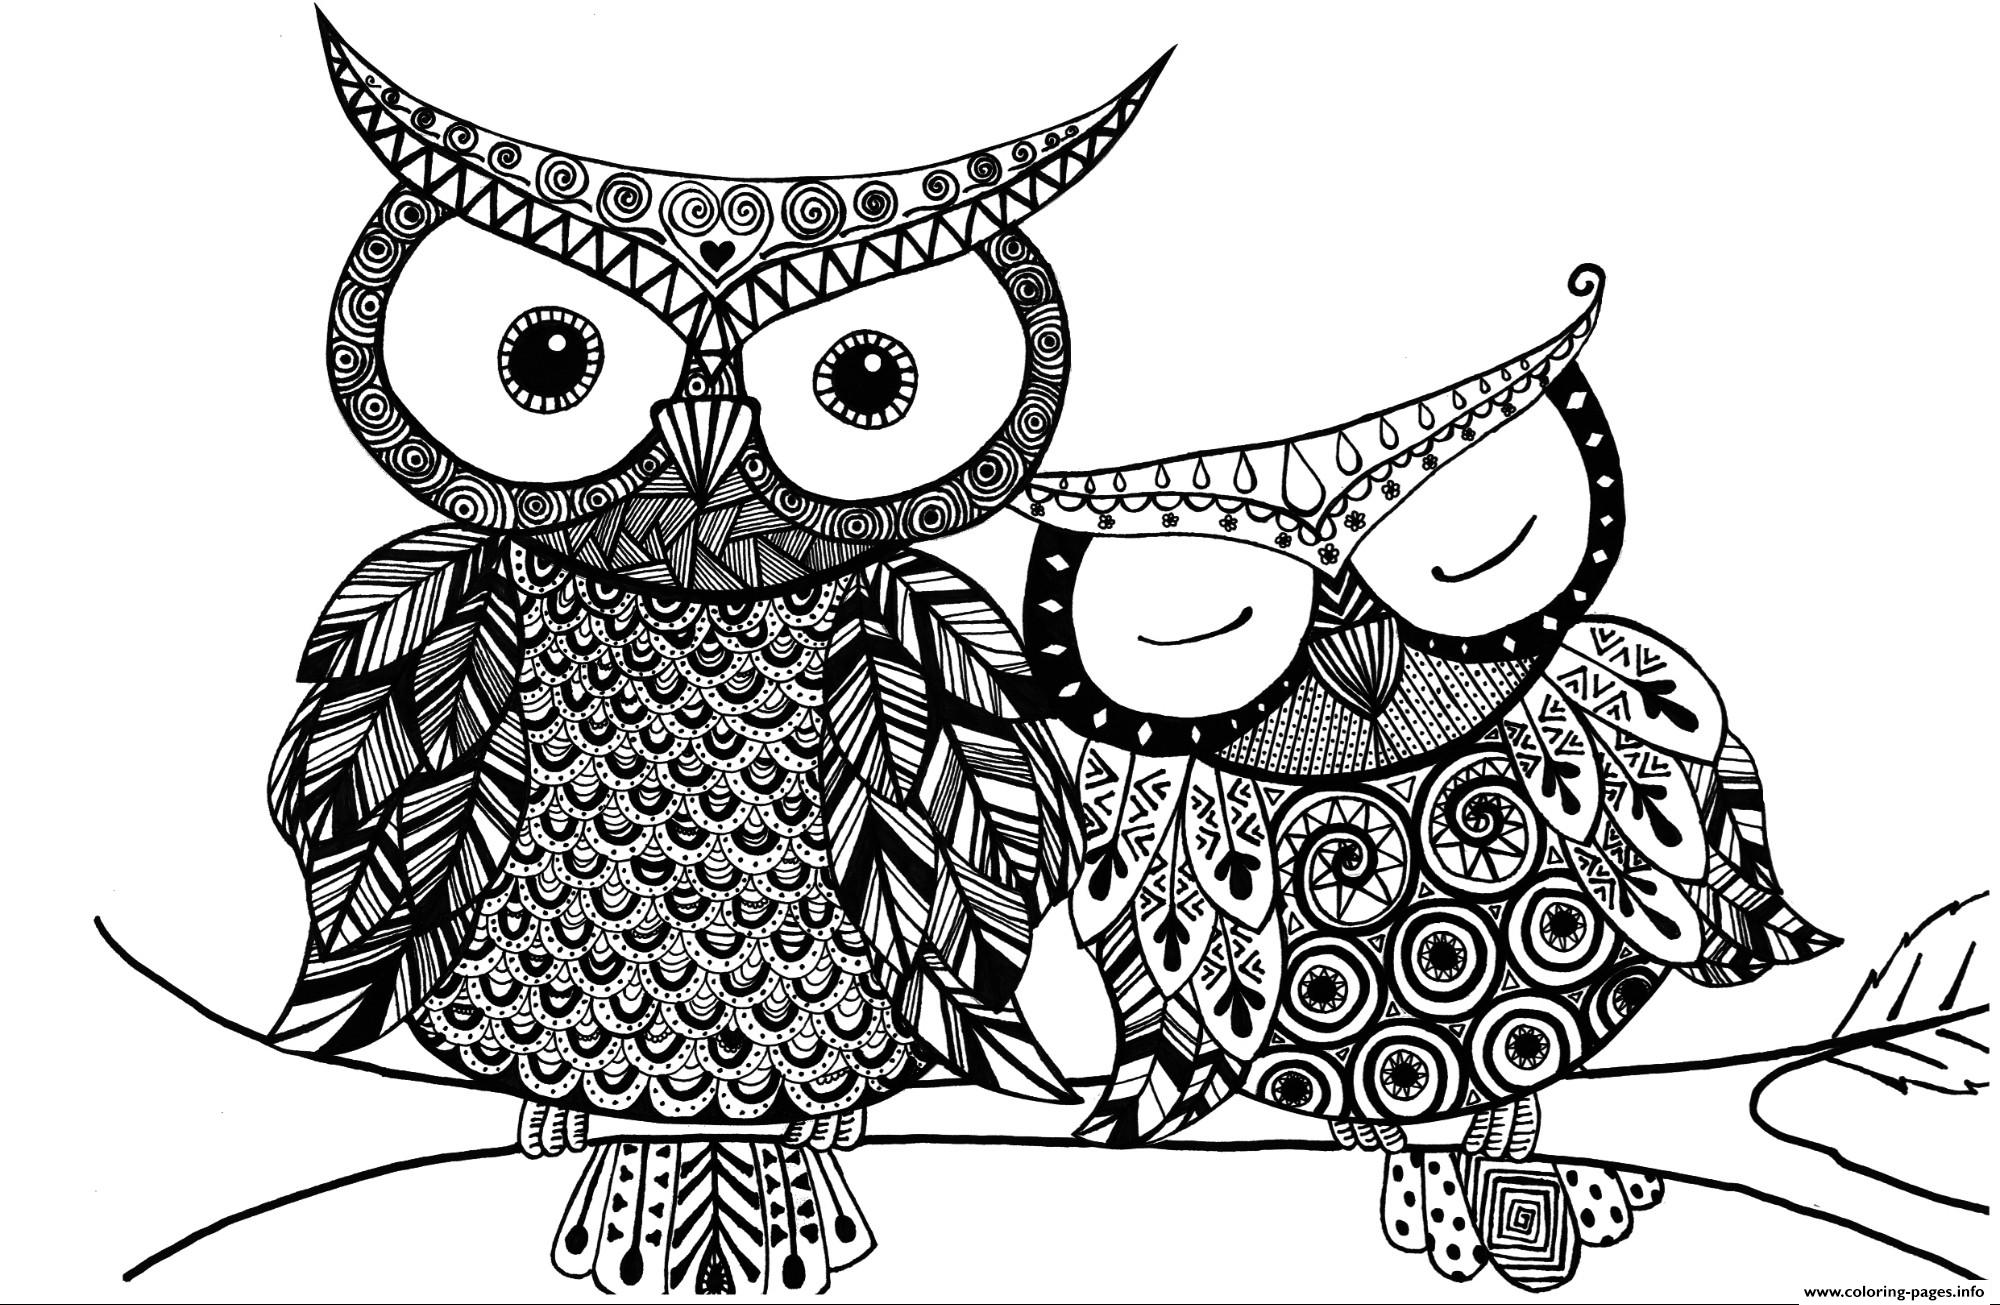 owl coloring images adult owl coloring pages printable owl coloring images